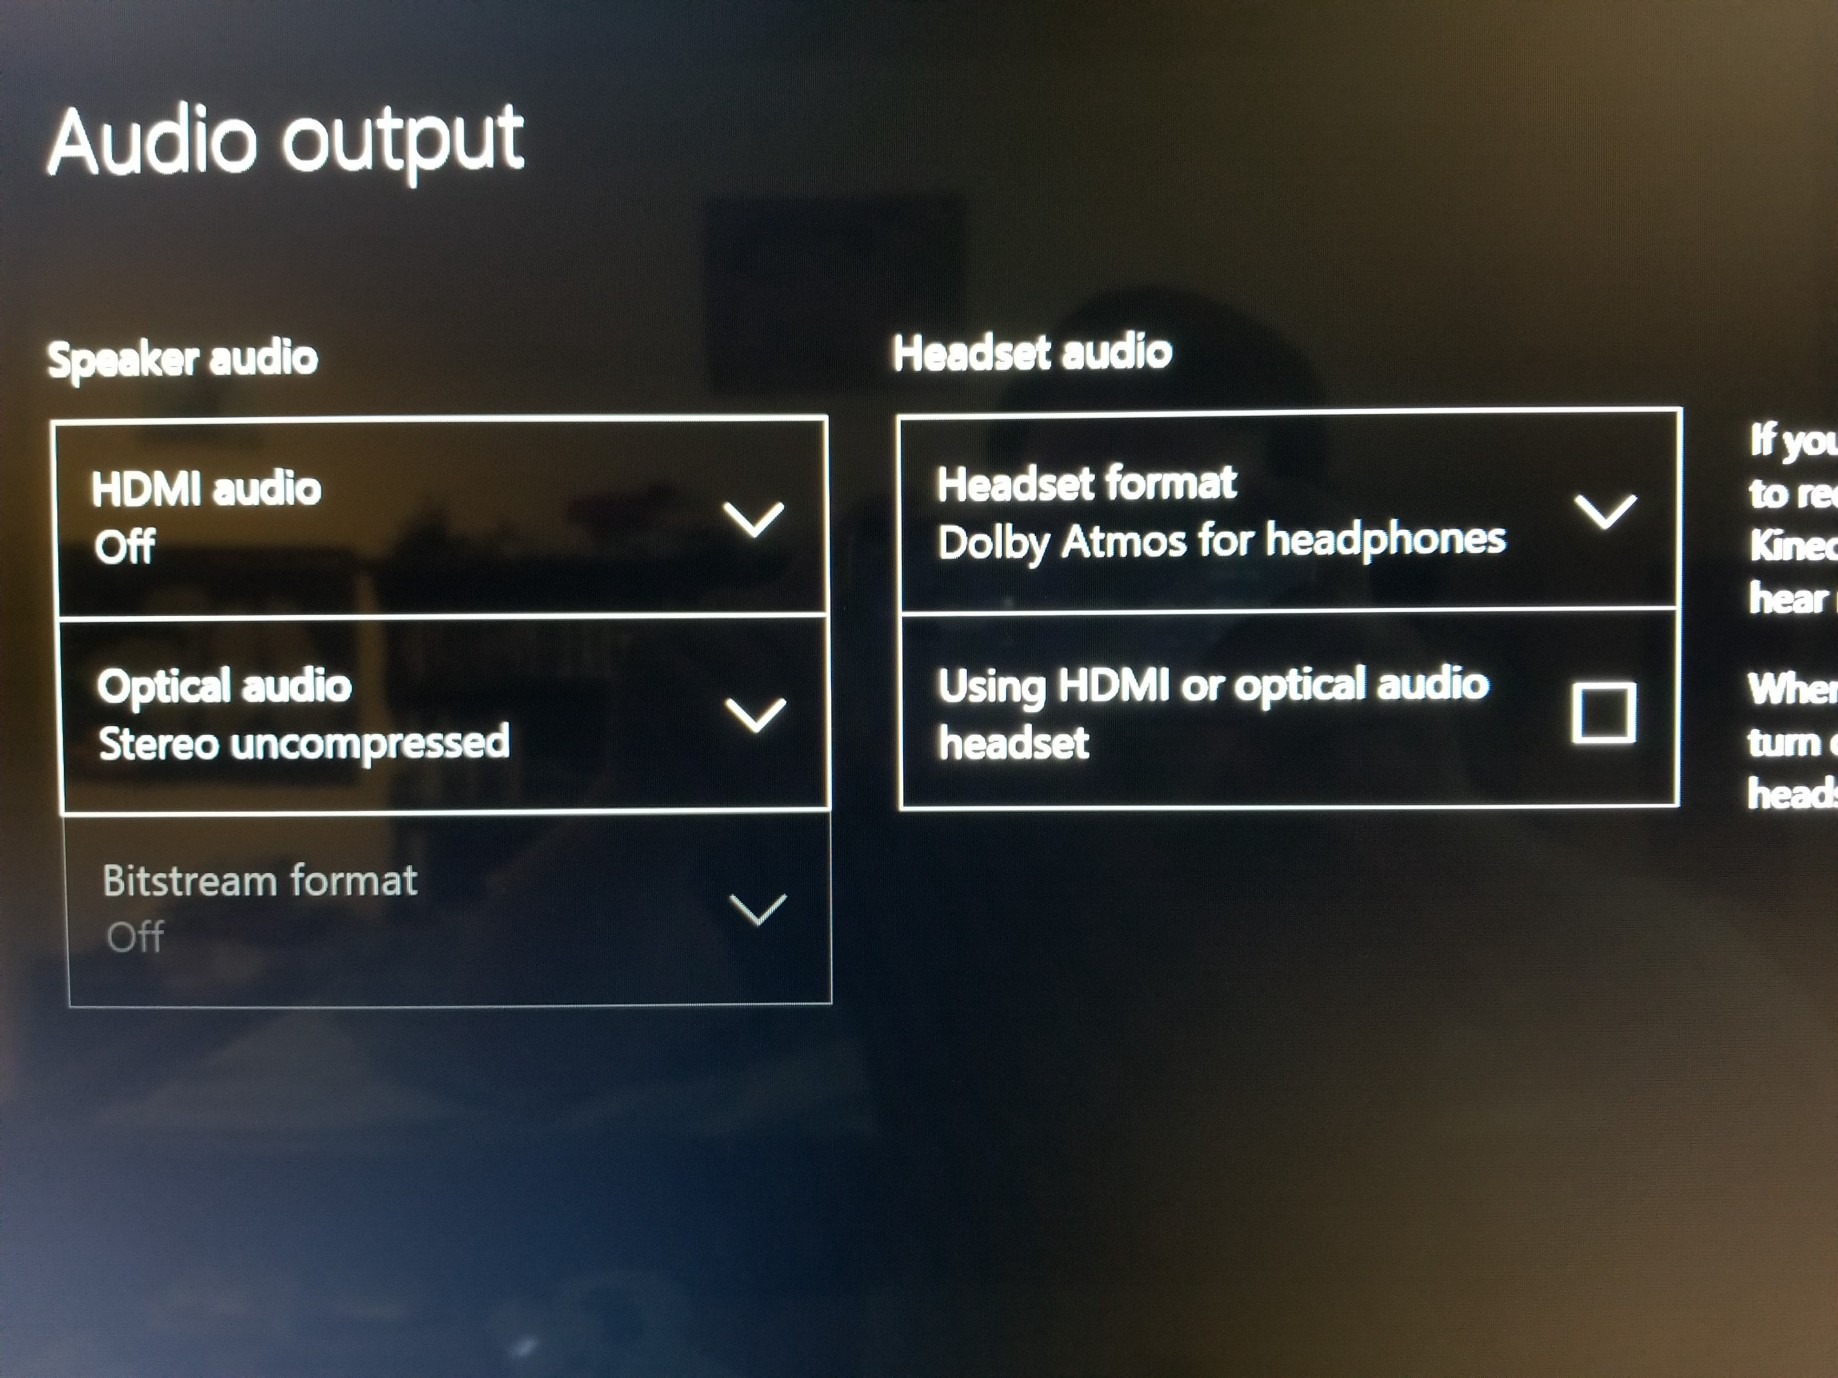 You can indeed use the new Dolby Atmos/Windows Sonic sound formats